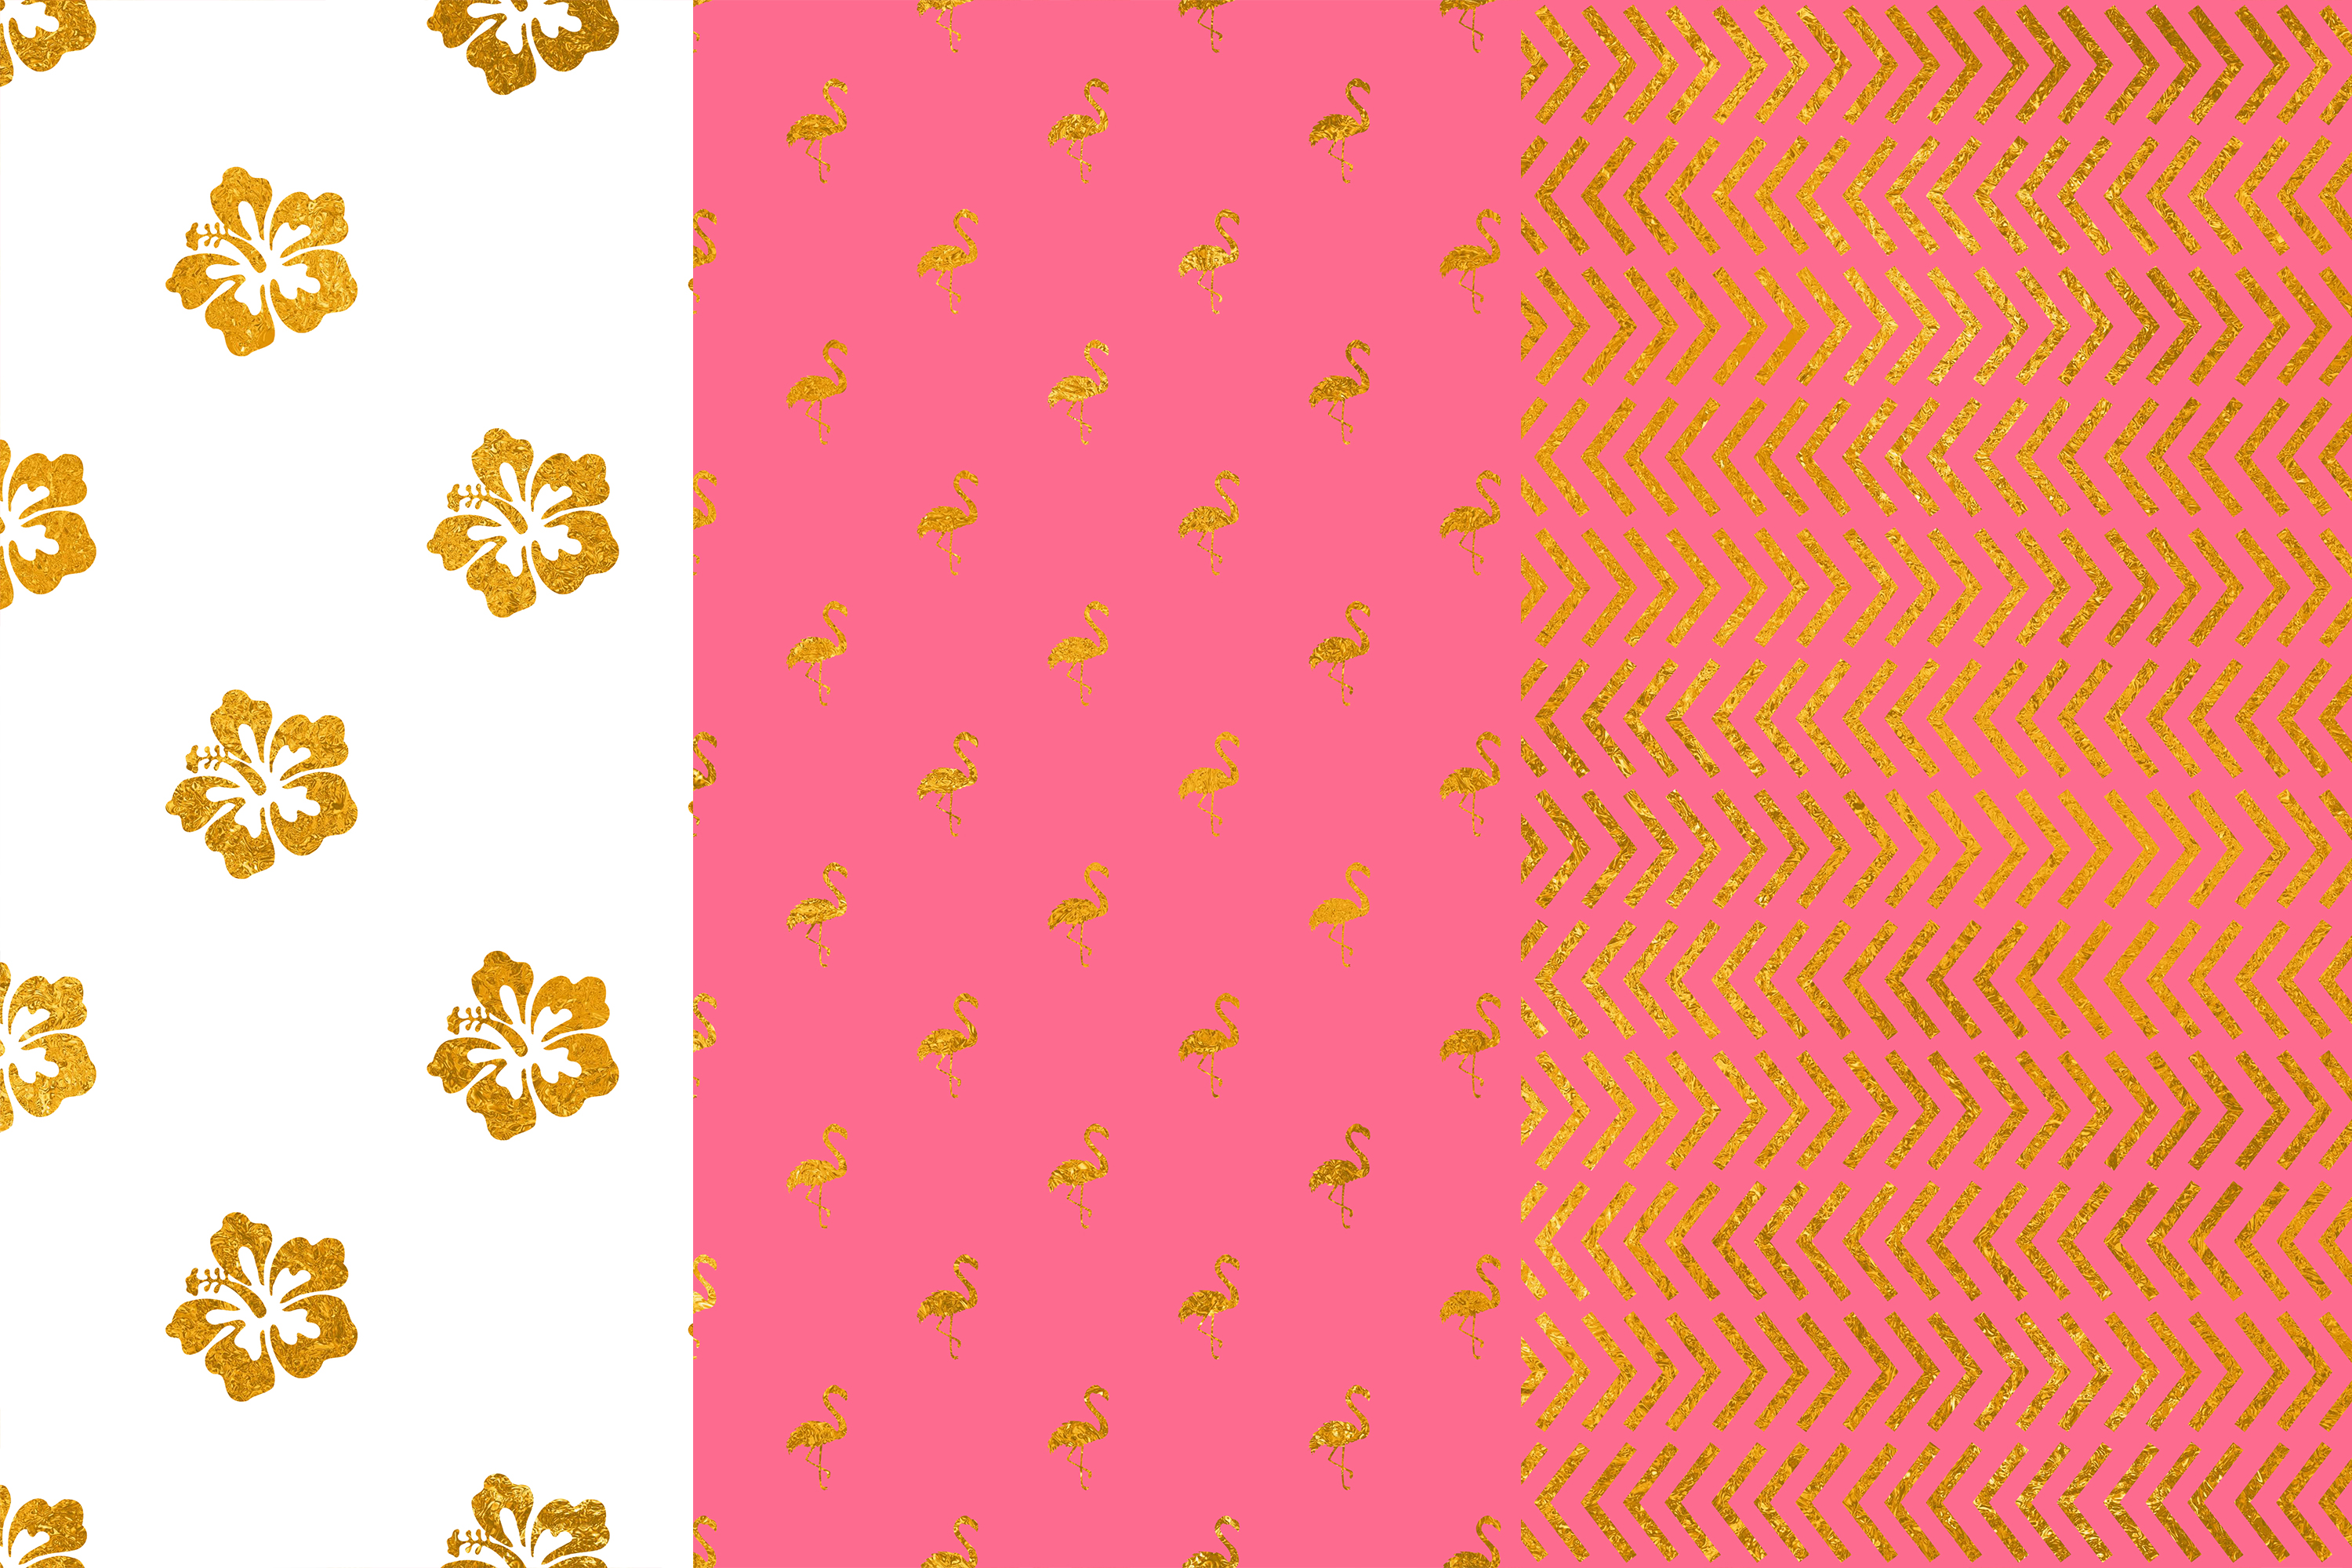 Tropical Gold Pink Seamless Patterns example image 2